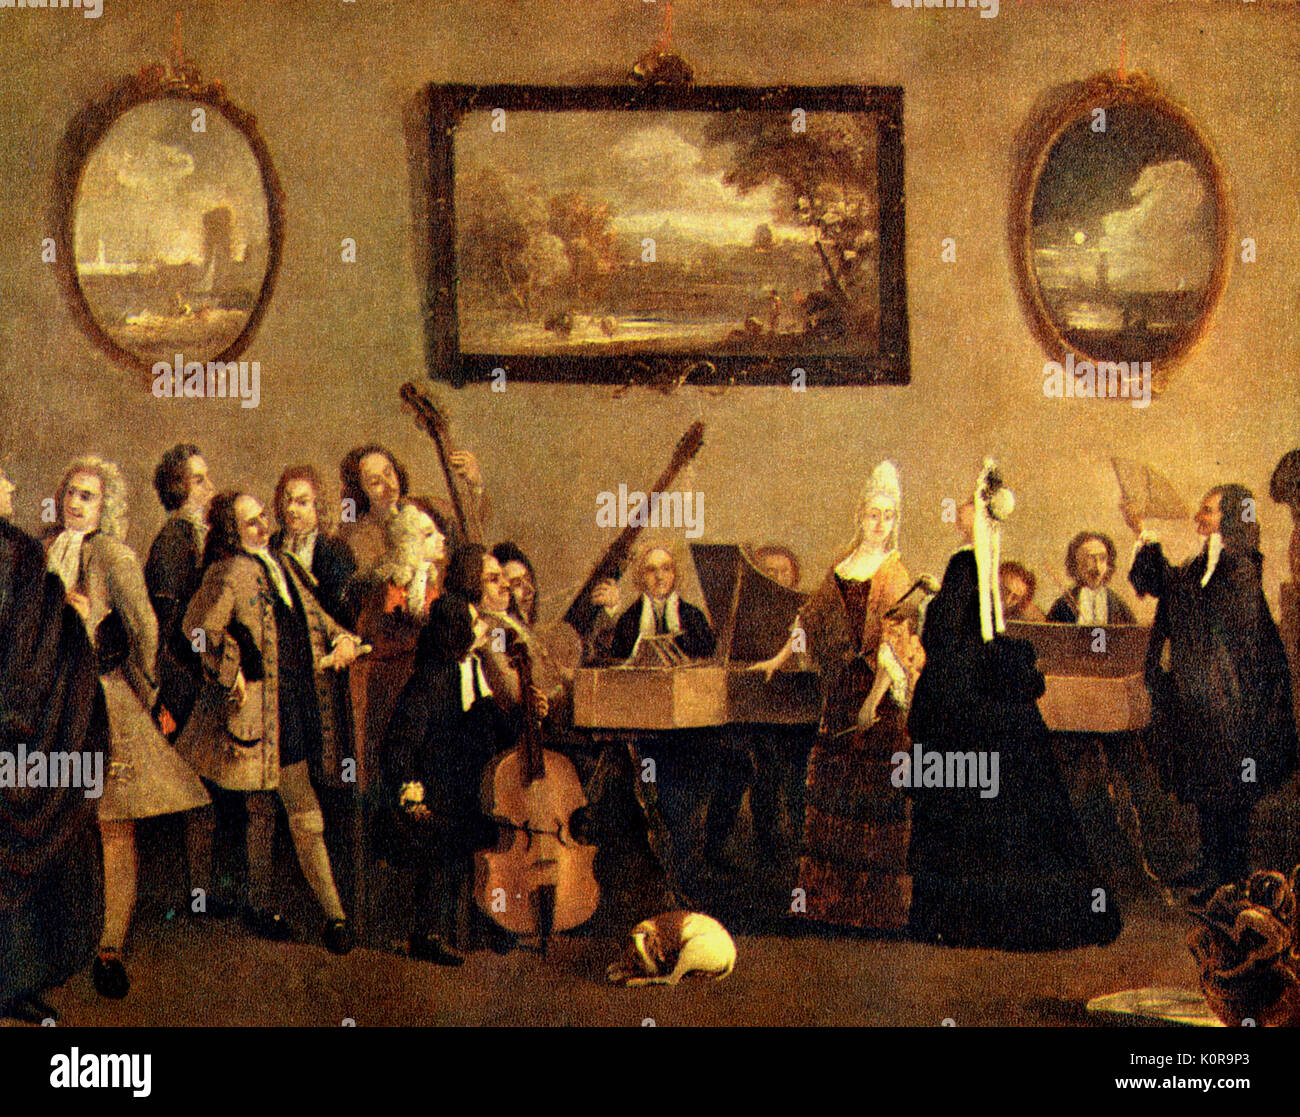 18th century classical composers